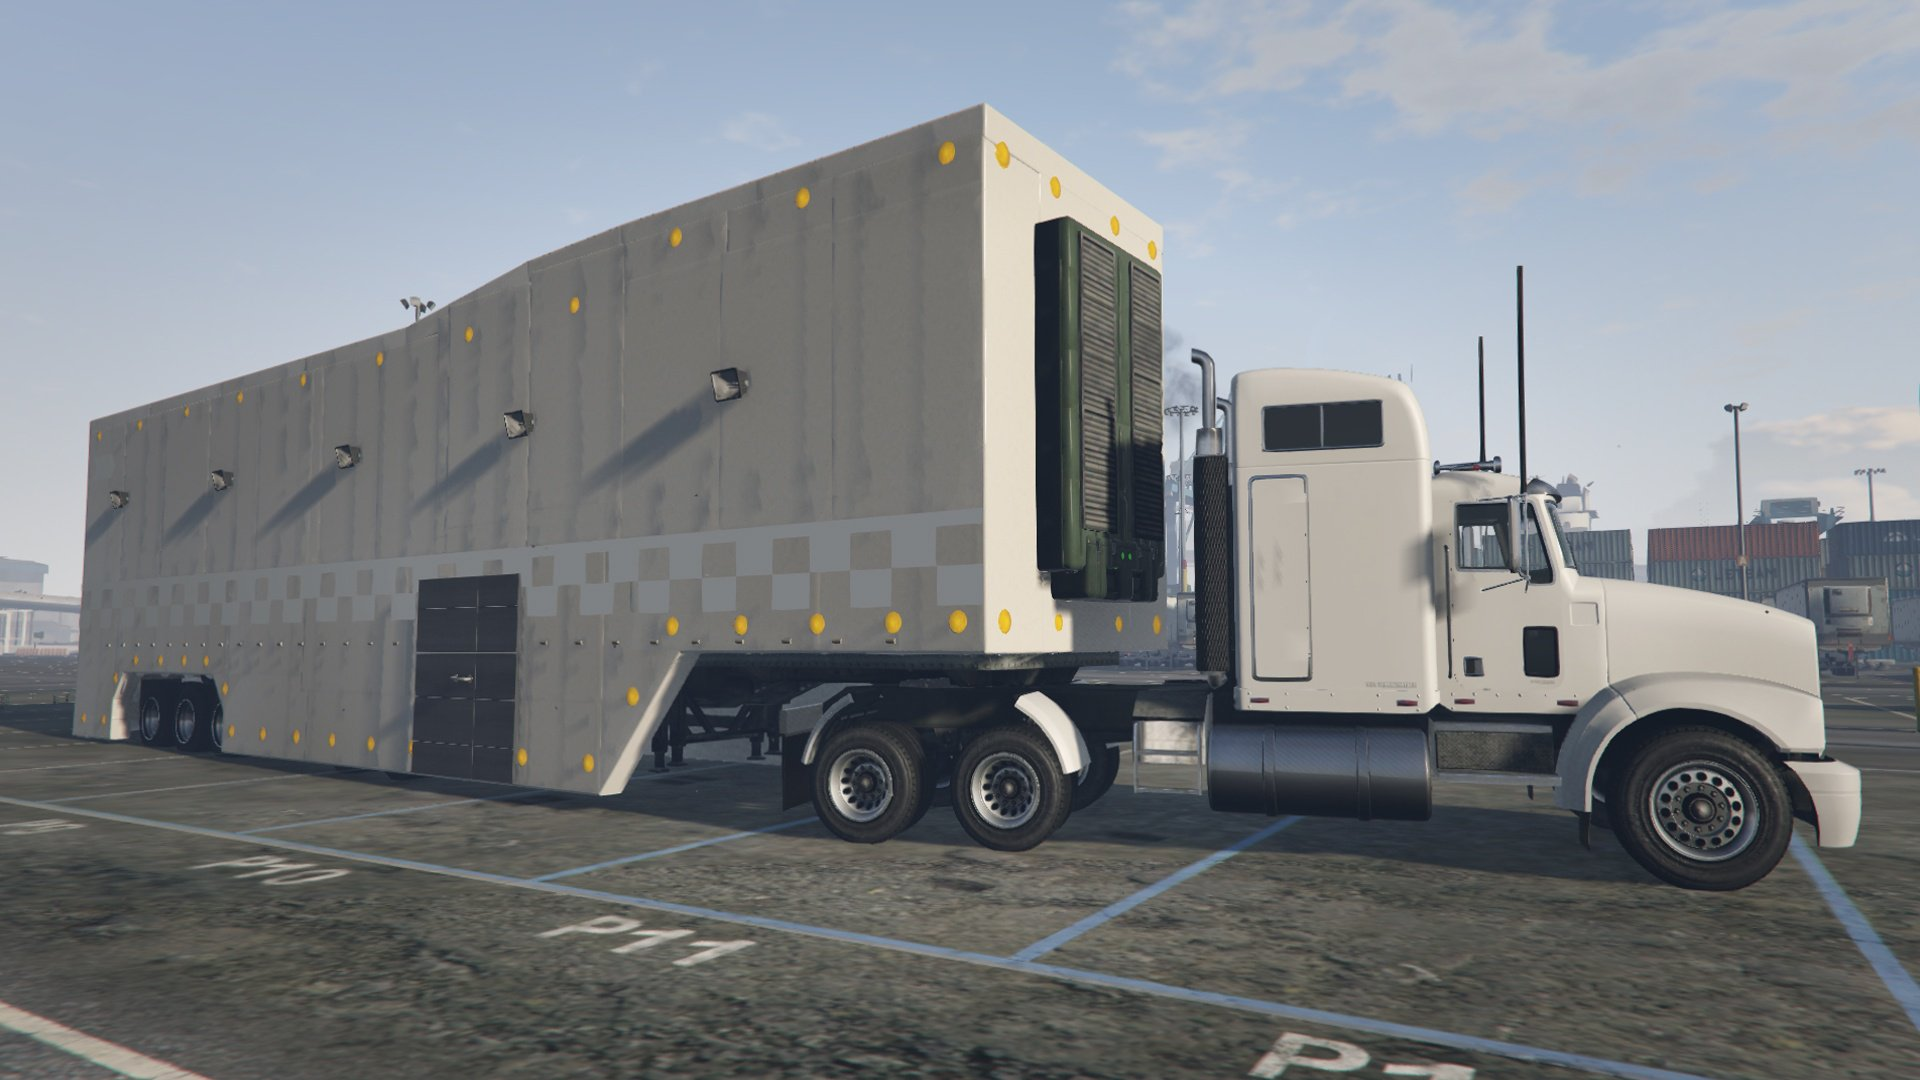 executive featherlite racing trailer and livery menyoo vehicules pour gta v sur gta modding. Black Bedroom Furniture Sets. Home Design Ideas